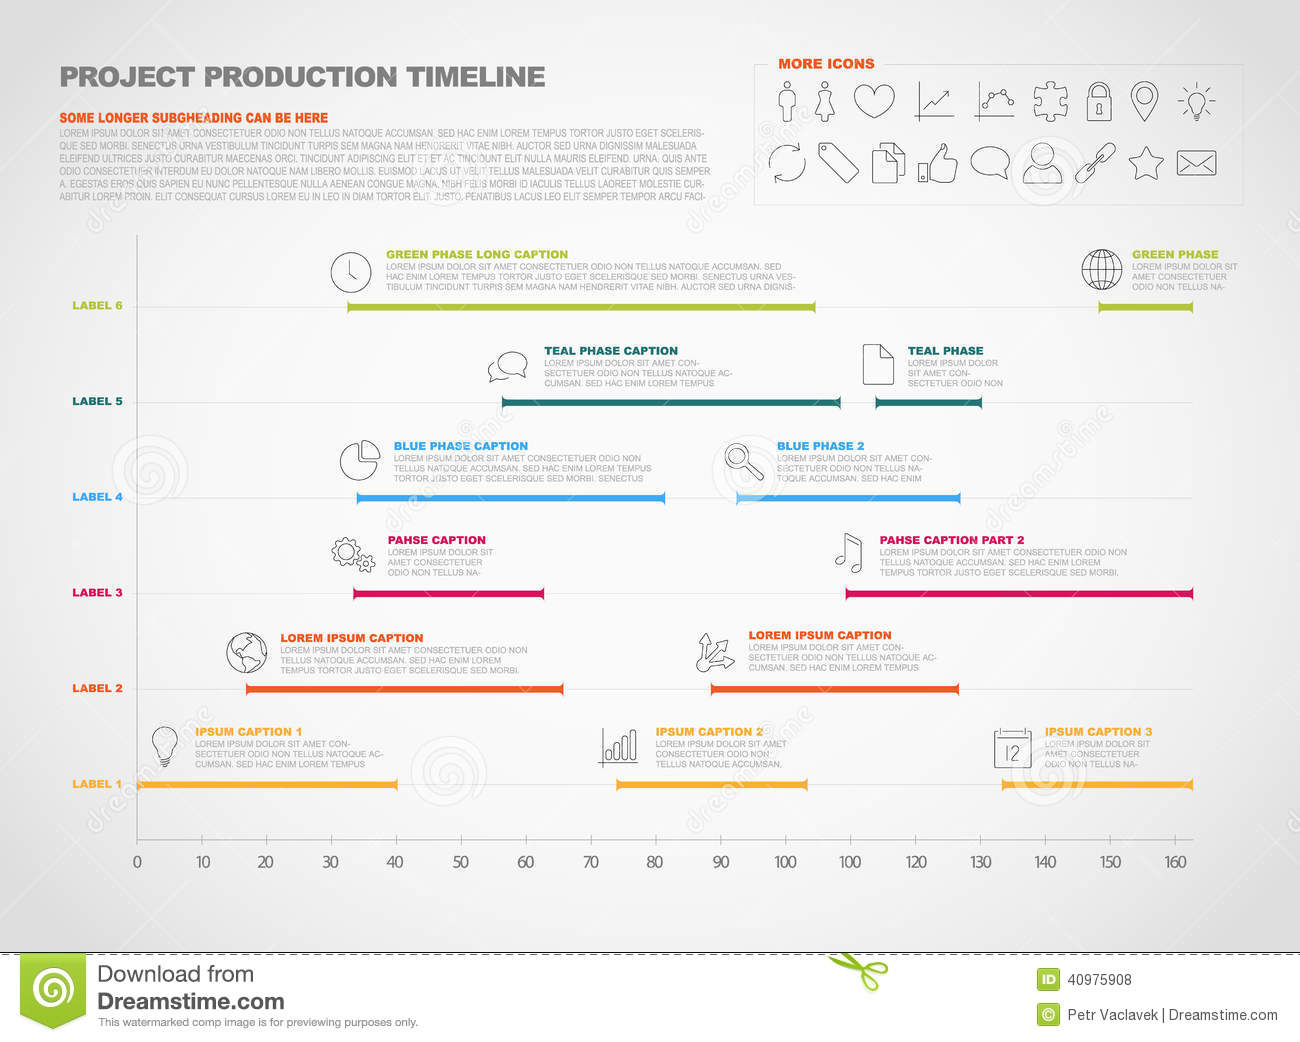 Project Production Timeline Graph Stock Vector - Image: 40975908